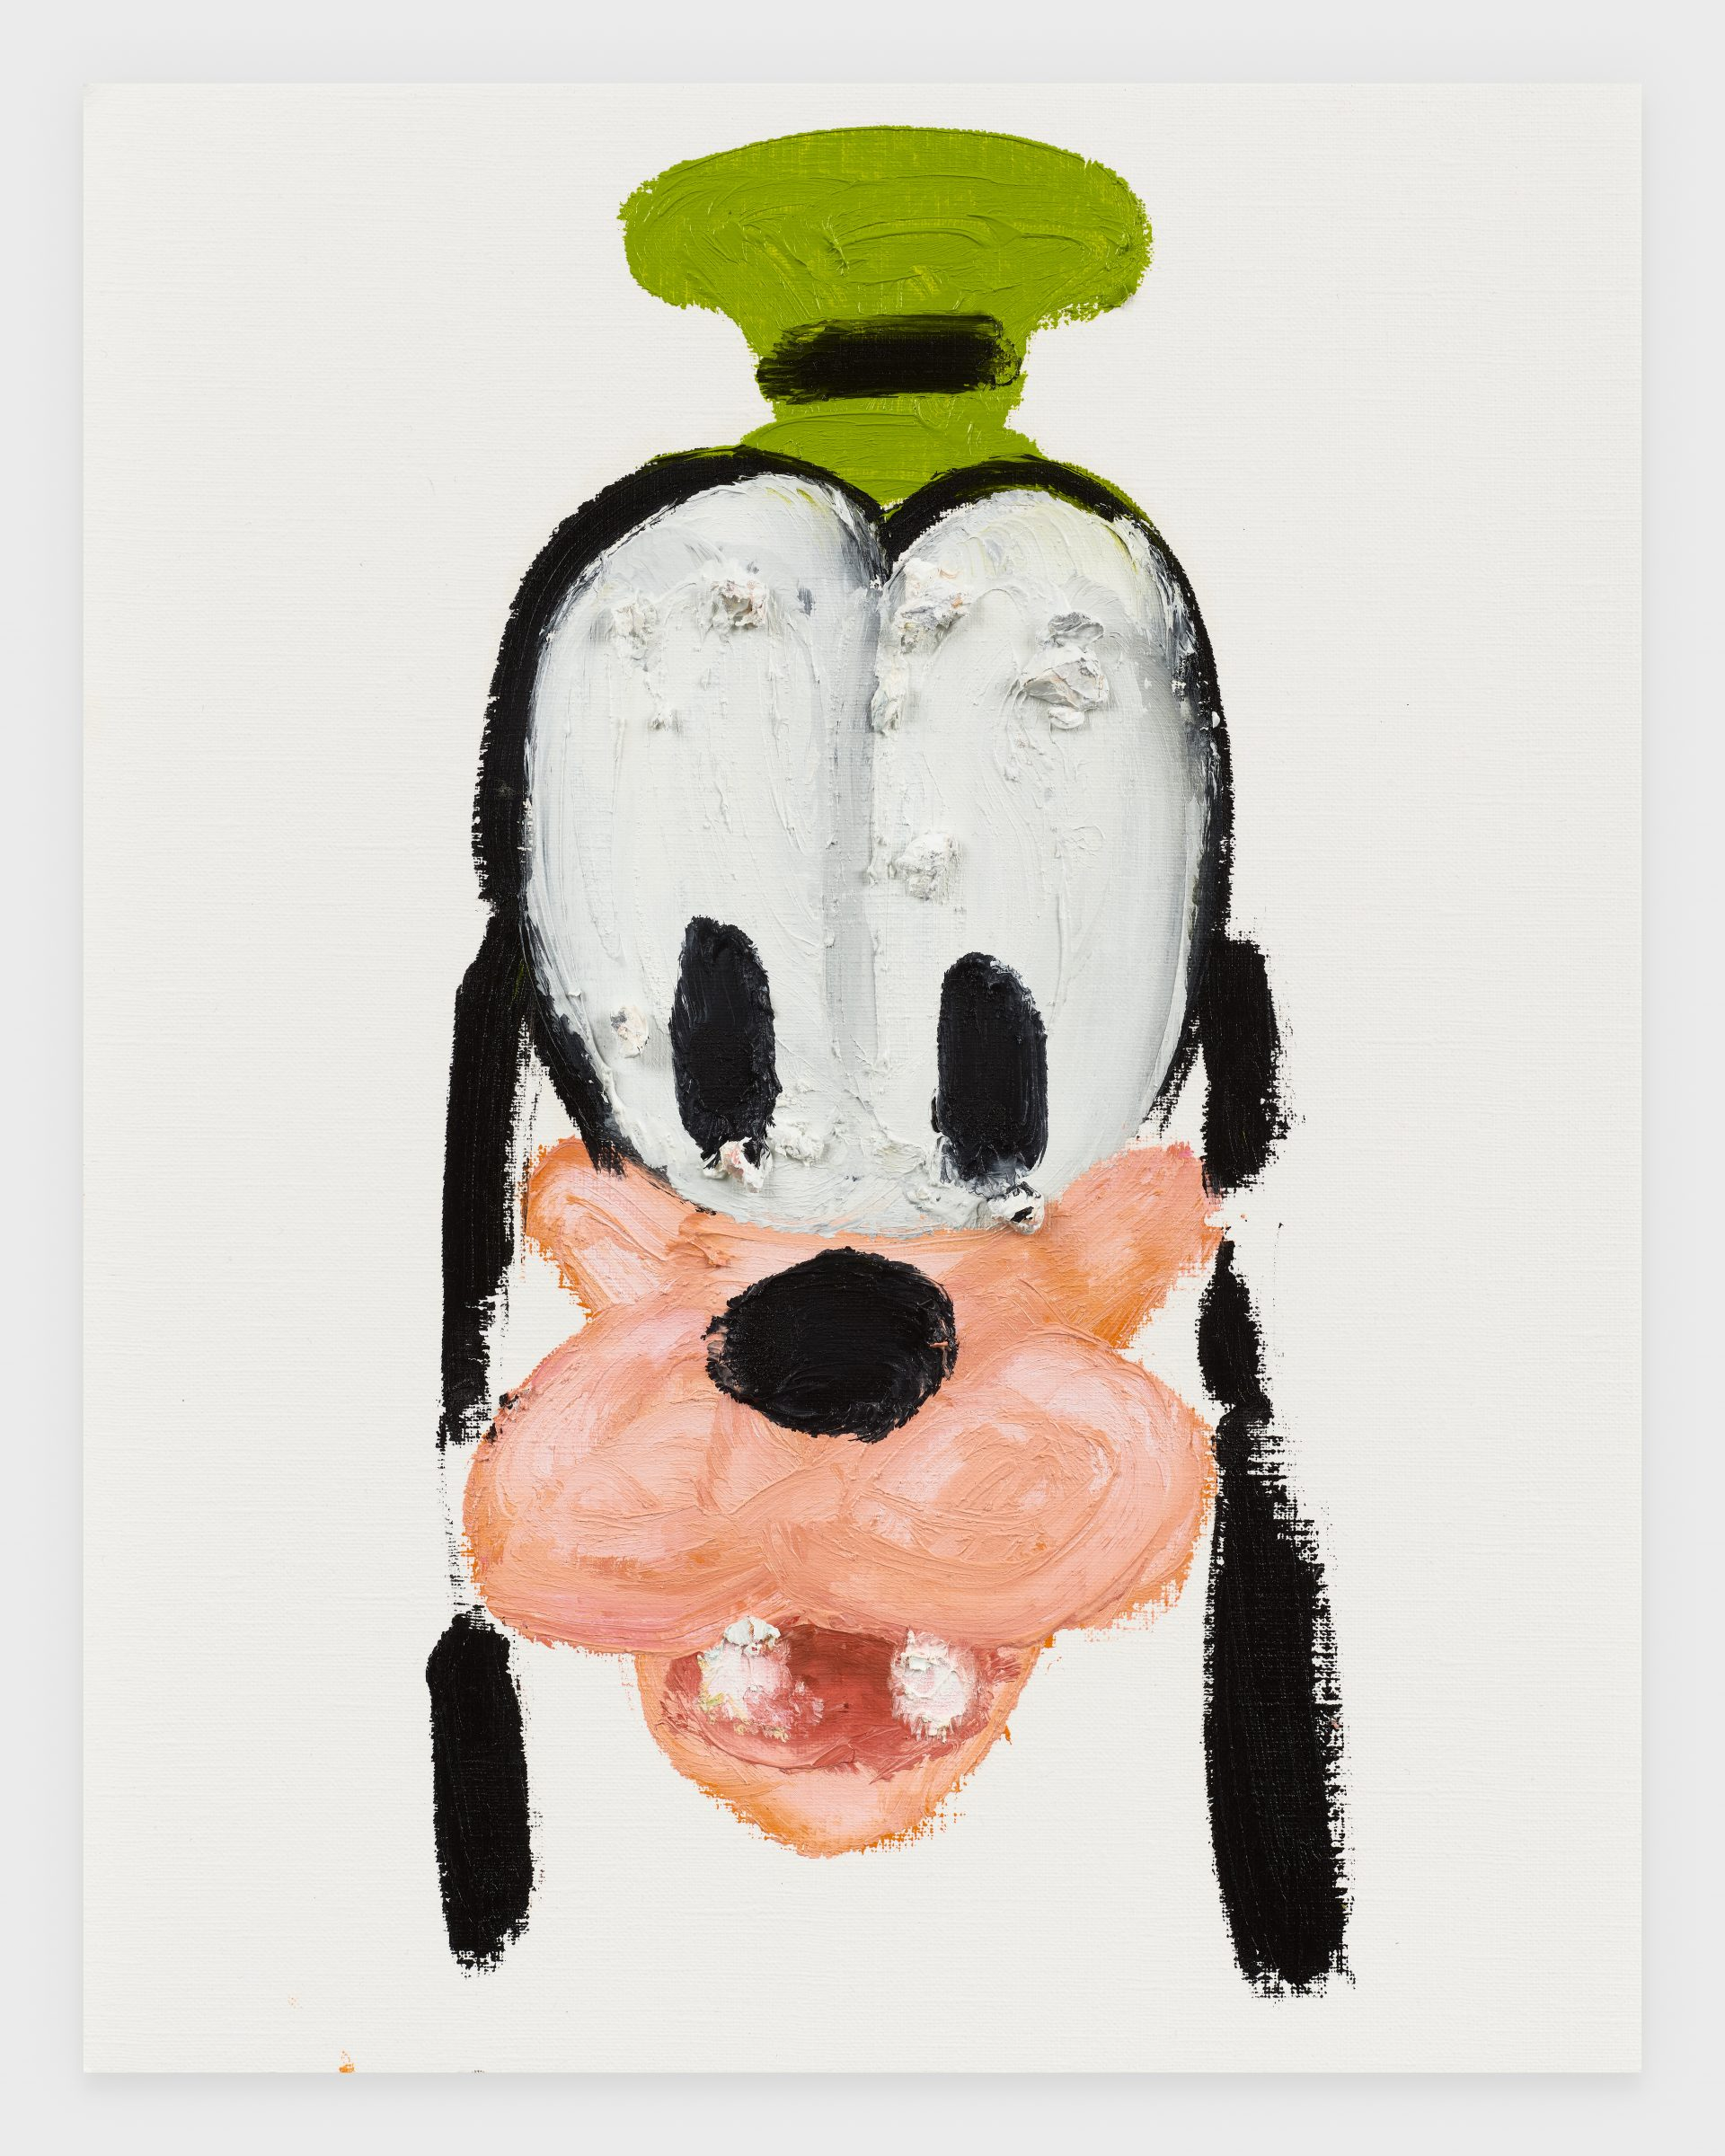 Goofy, 2020, Oil stick on archival paper, 11 x 14 inches